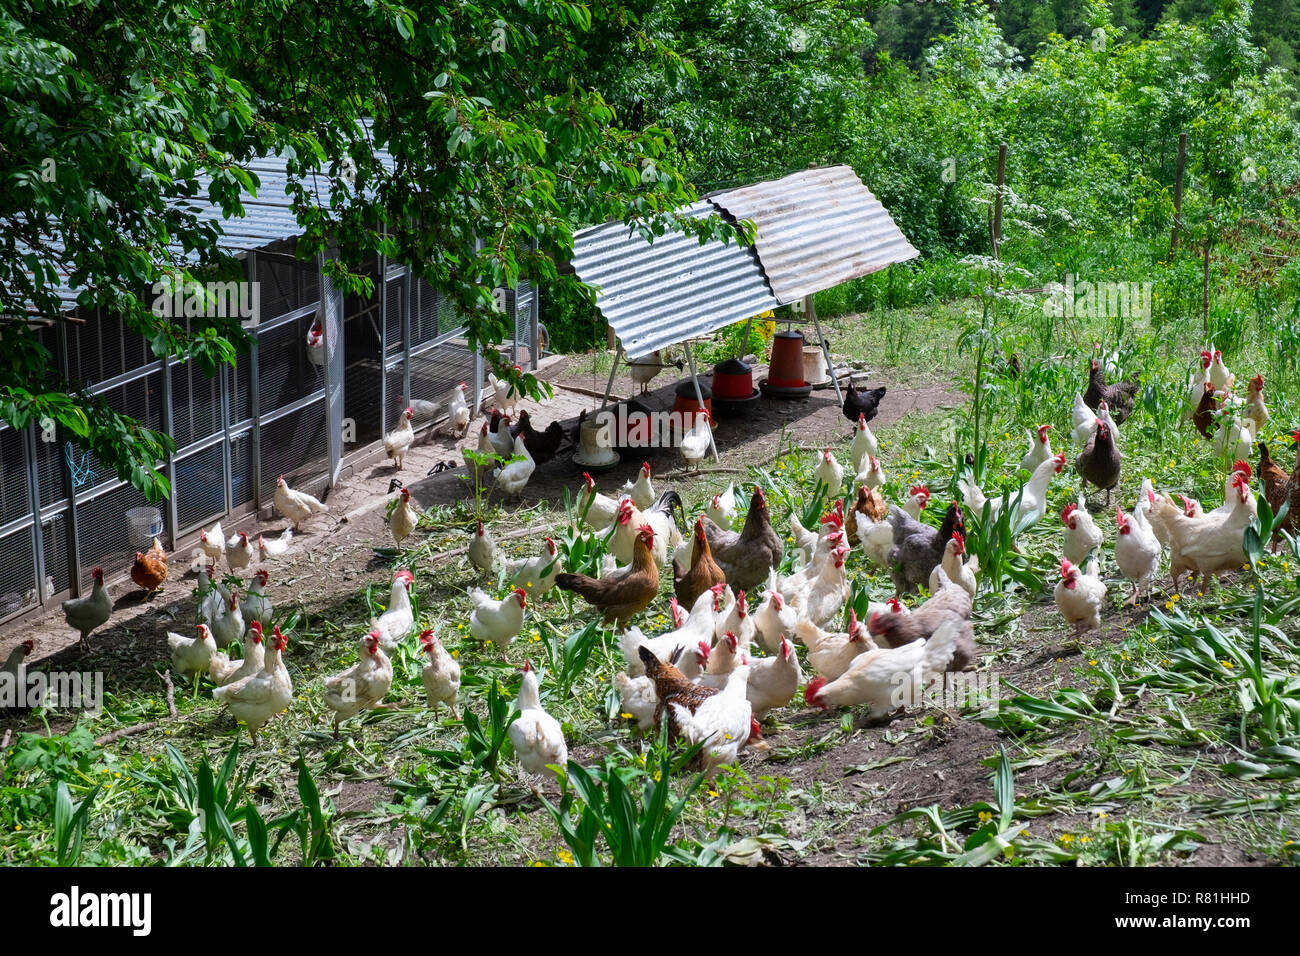 Free range chickens in a field with grass and plants Stock Photo